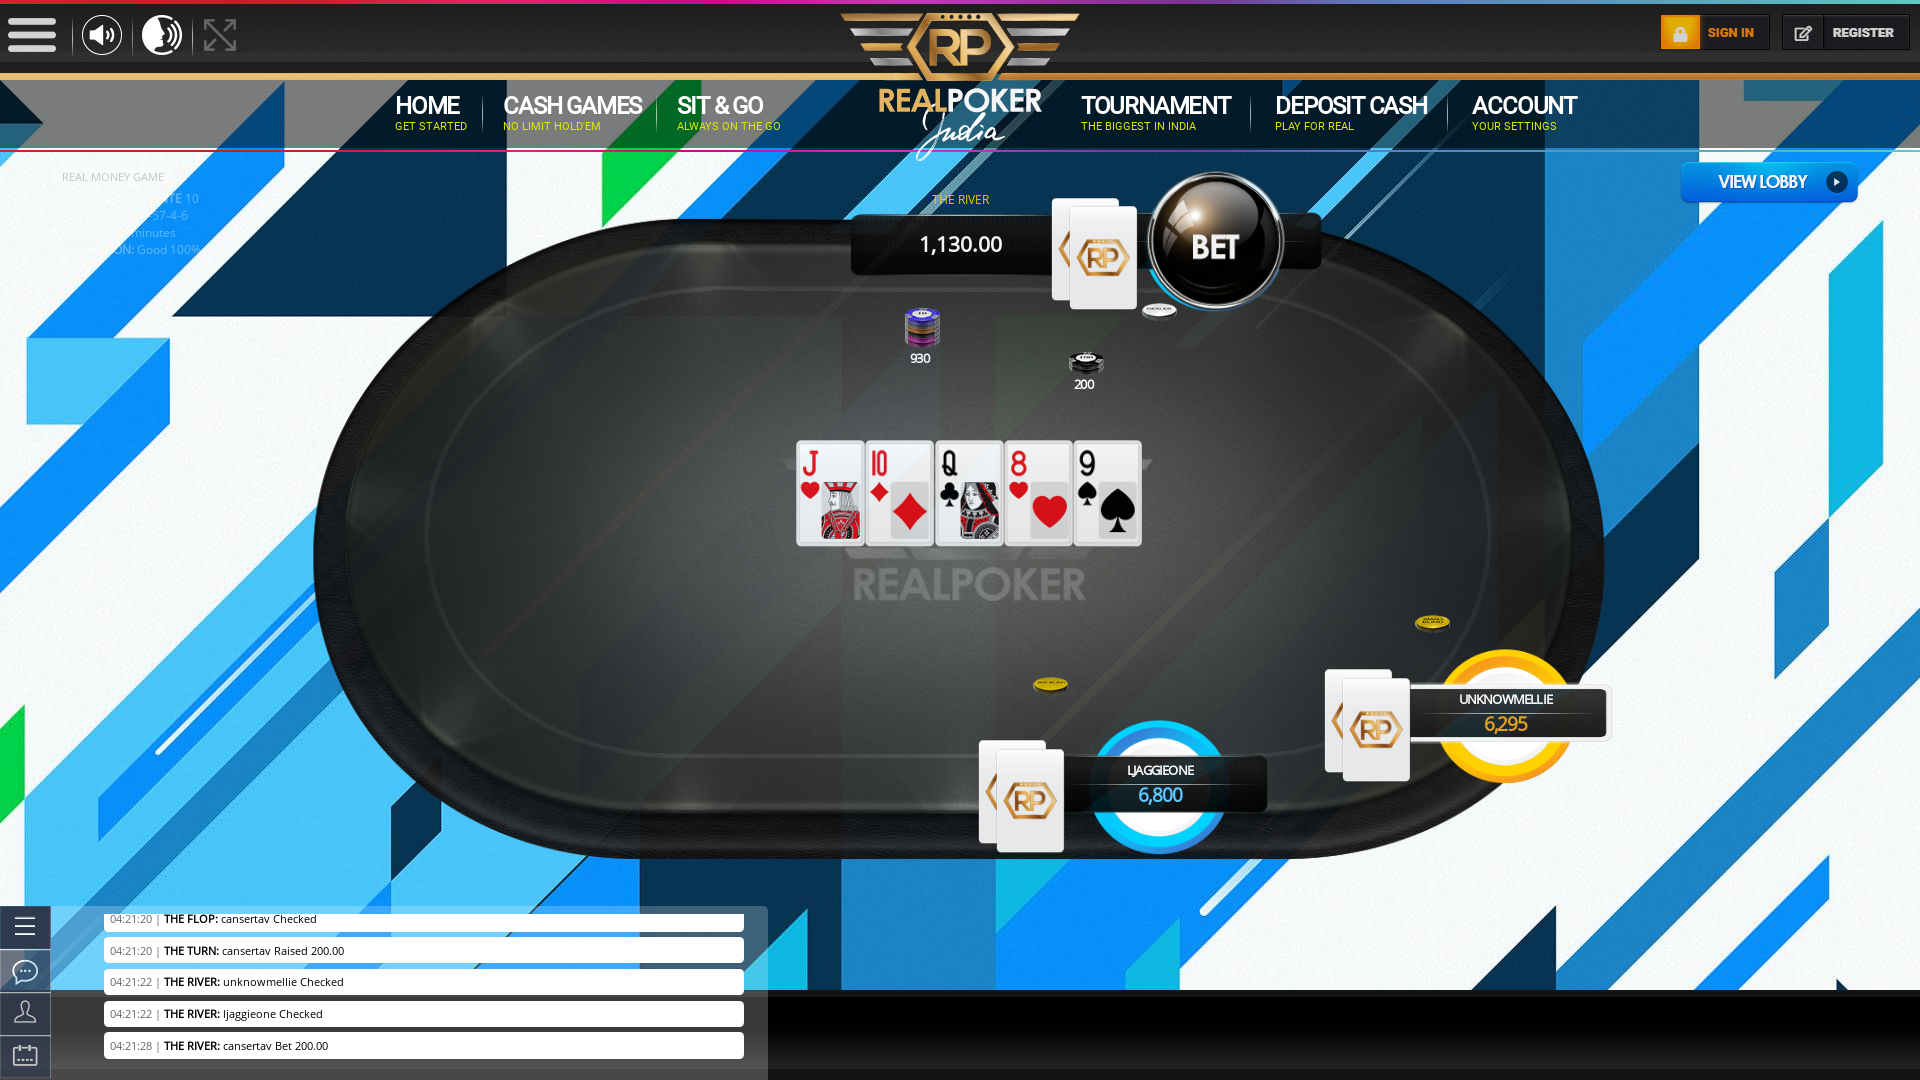 Real poker 10 player table in the 33rd minute